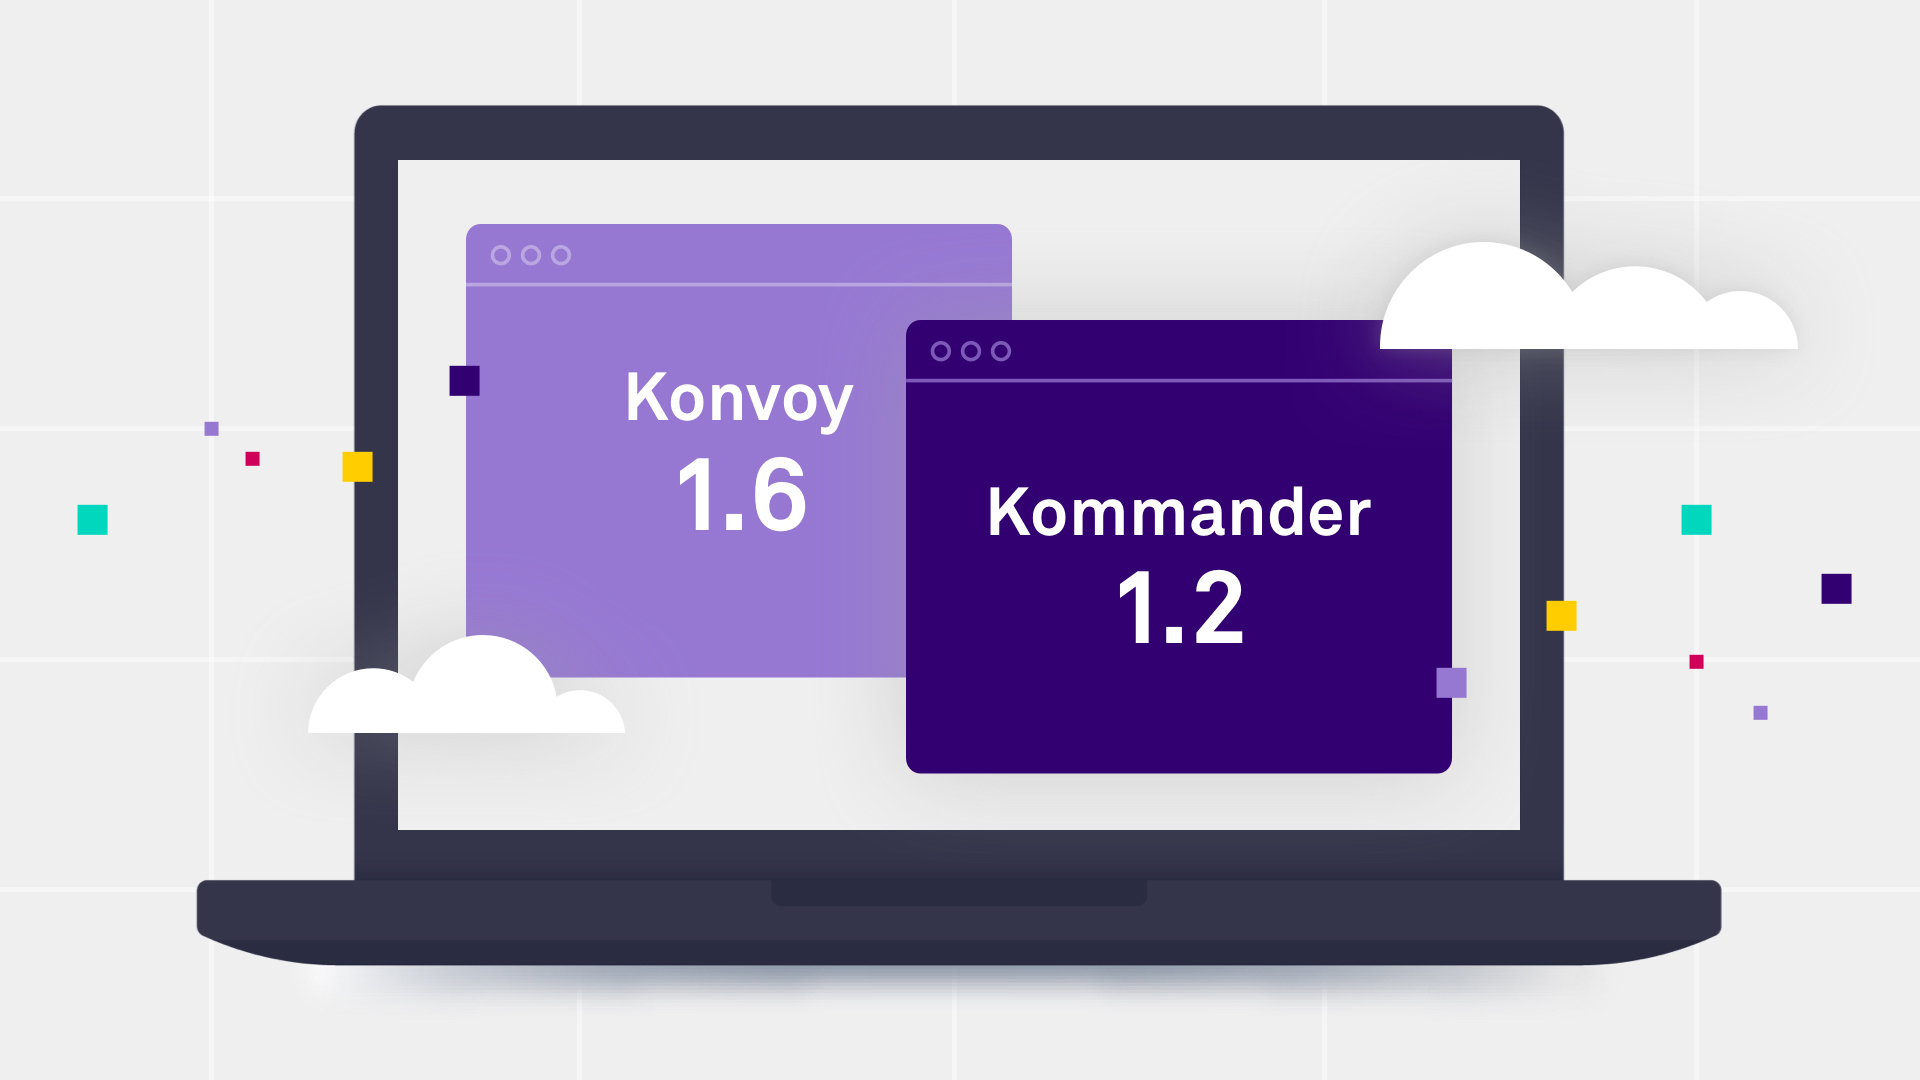 Full Steam Ahead! D2iQ Konvoy 1.6 and D2iQ Kommander 1.2 are GA!